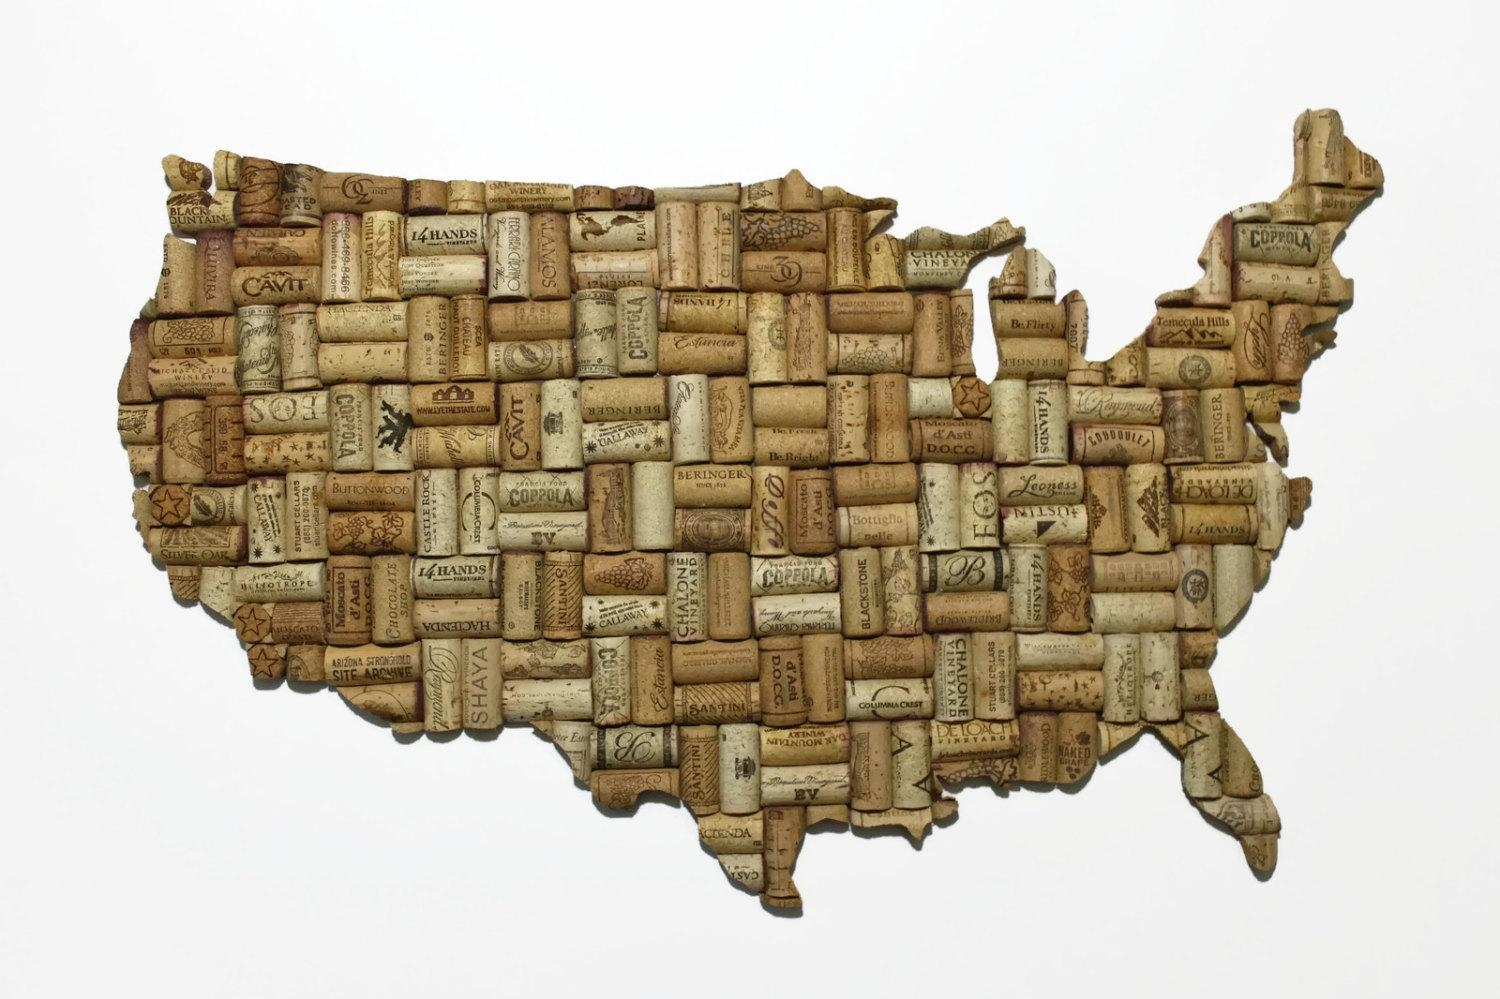 Patriotic Decor United States Map Patriotic Art United Regarding Us Map Wall Art (Image 10 of 20)